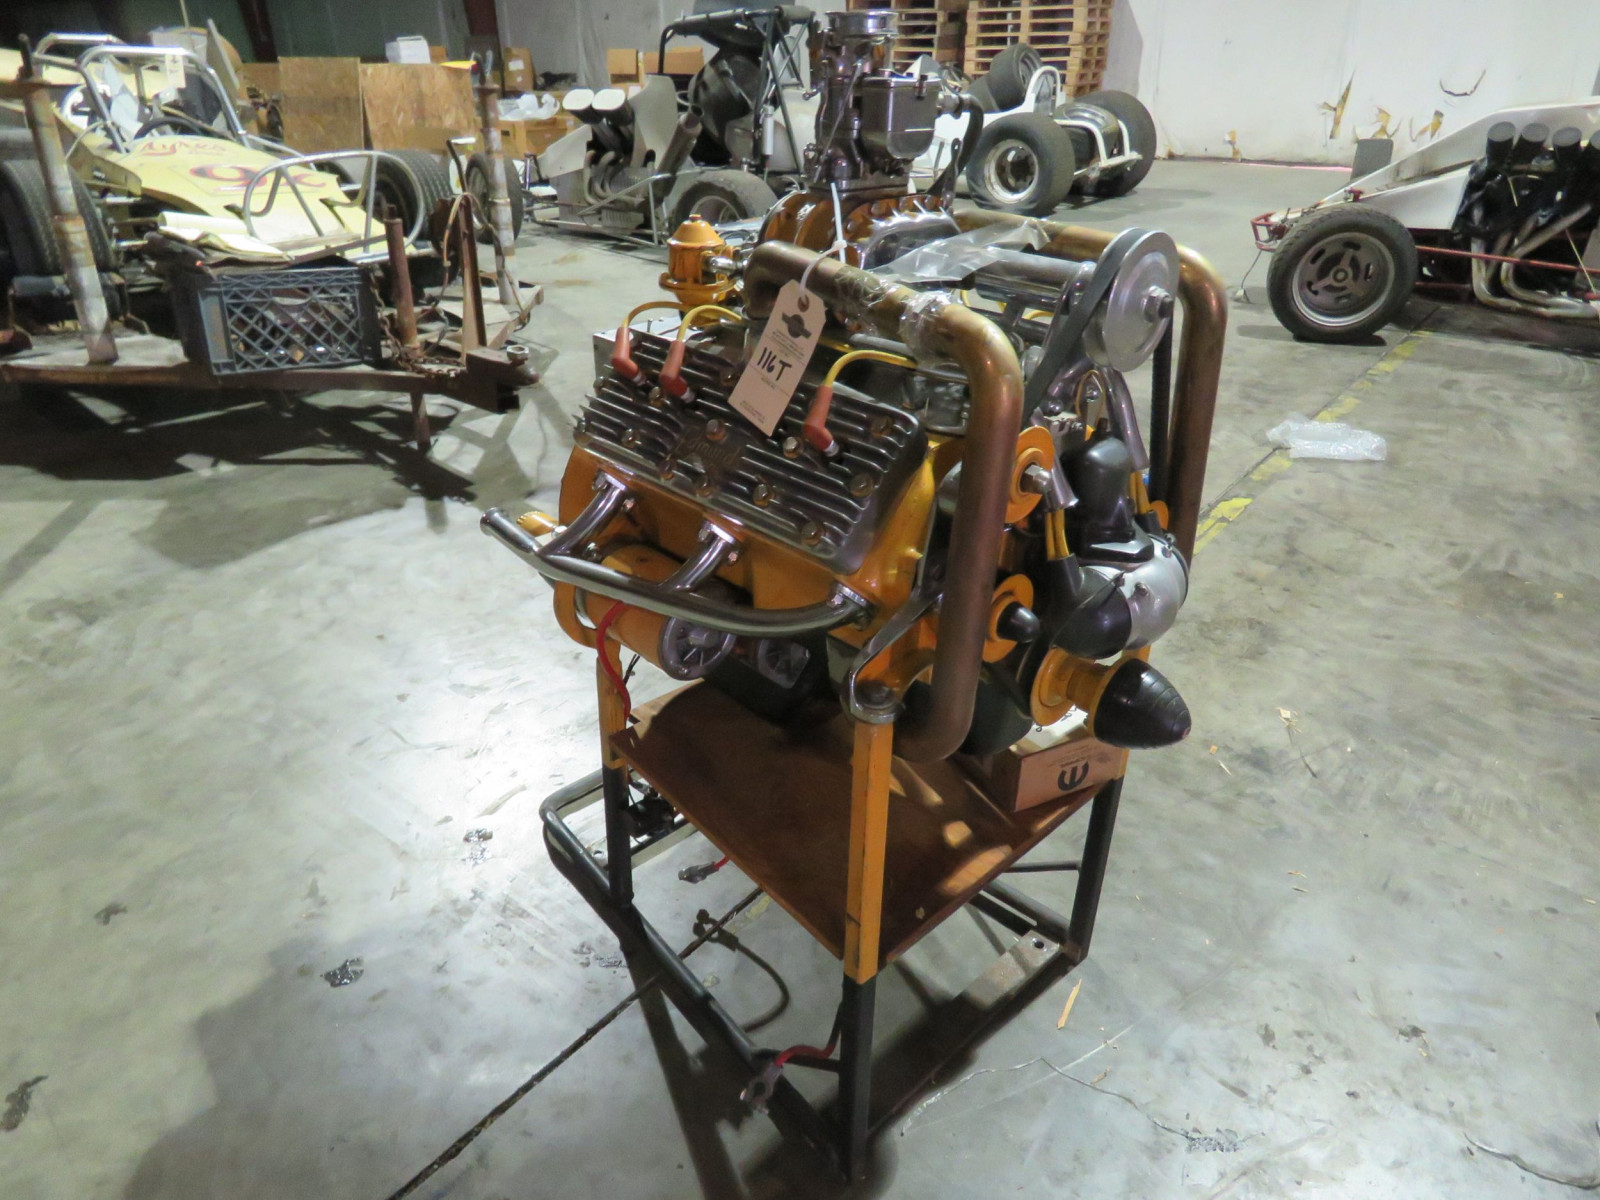 Fabulous Display Hotrod Flathead Ford V8 Motor - Image 8